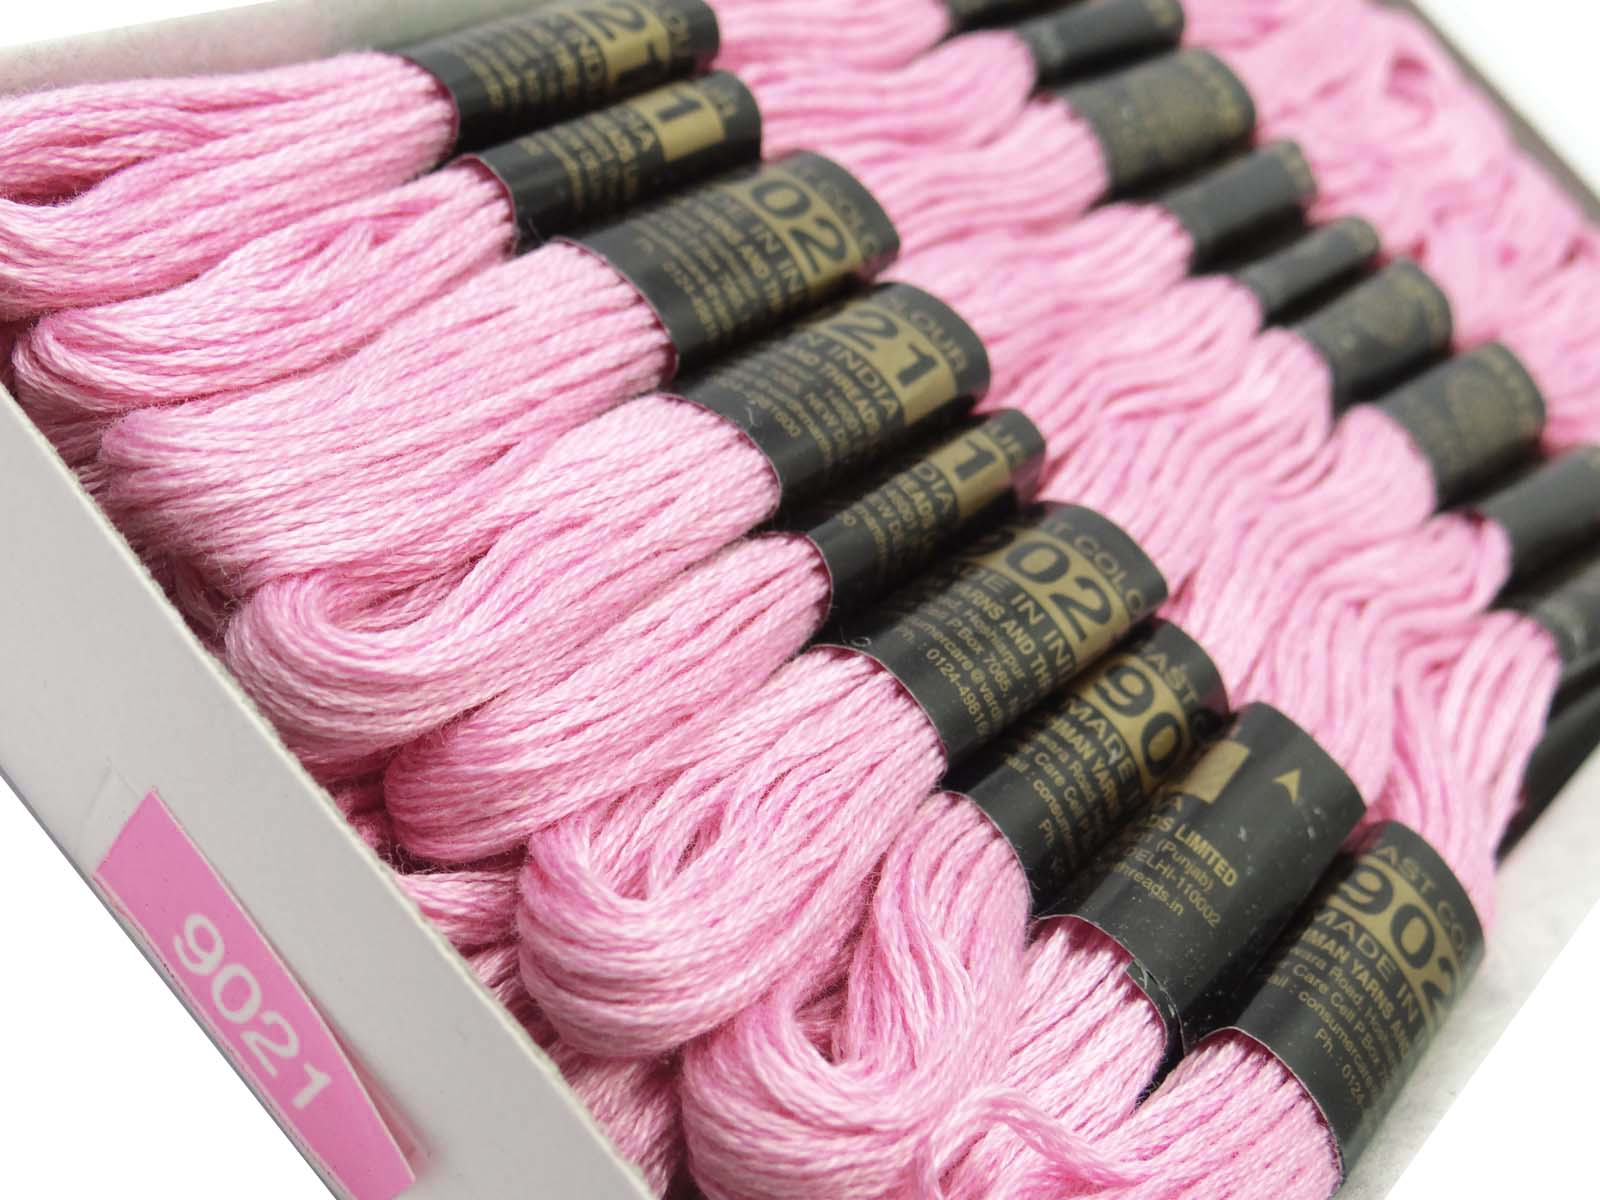 25 Pcs Pack Stitch Thread Embroidery Sewing Skeins Hand Set Cotton Cross Floss